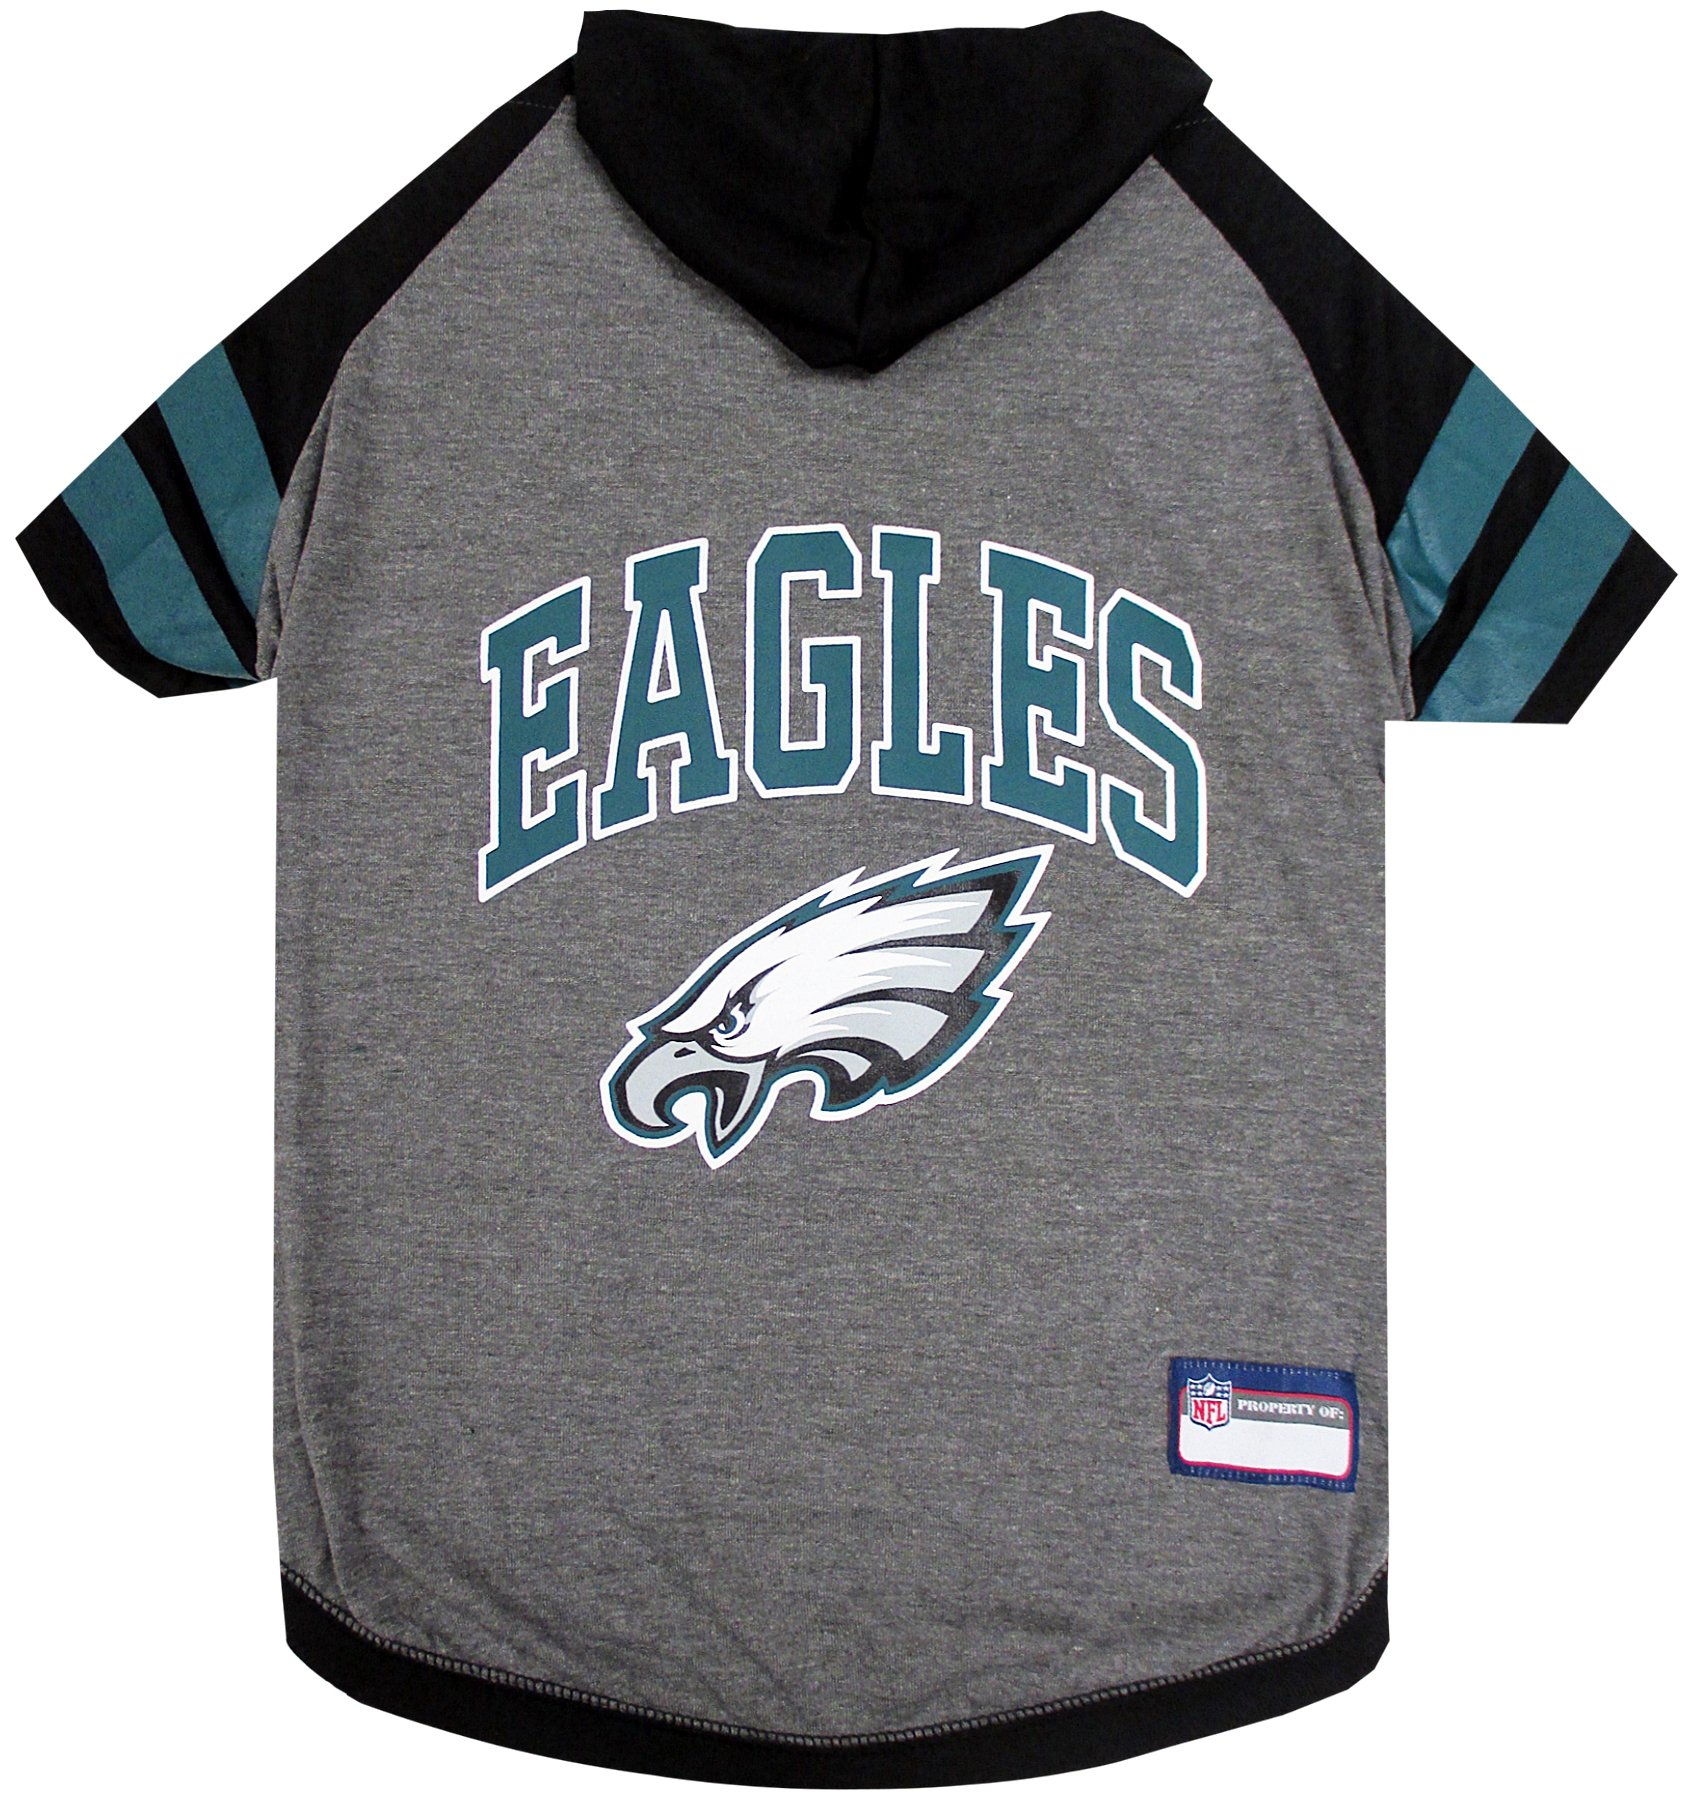 NFL PHILADELPHIA EAGLES HOODIE for DOGS & CATS. | NFL FOOTBALL licensed DOG HOODY Tee Shirt, Medium| Sports HOODY T-Shirt for Pets | Licensed Sporty Dog Shirt.